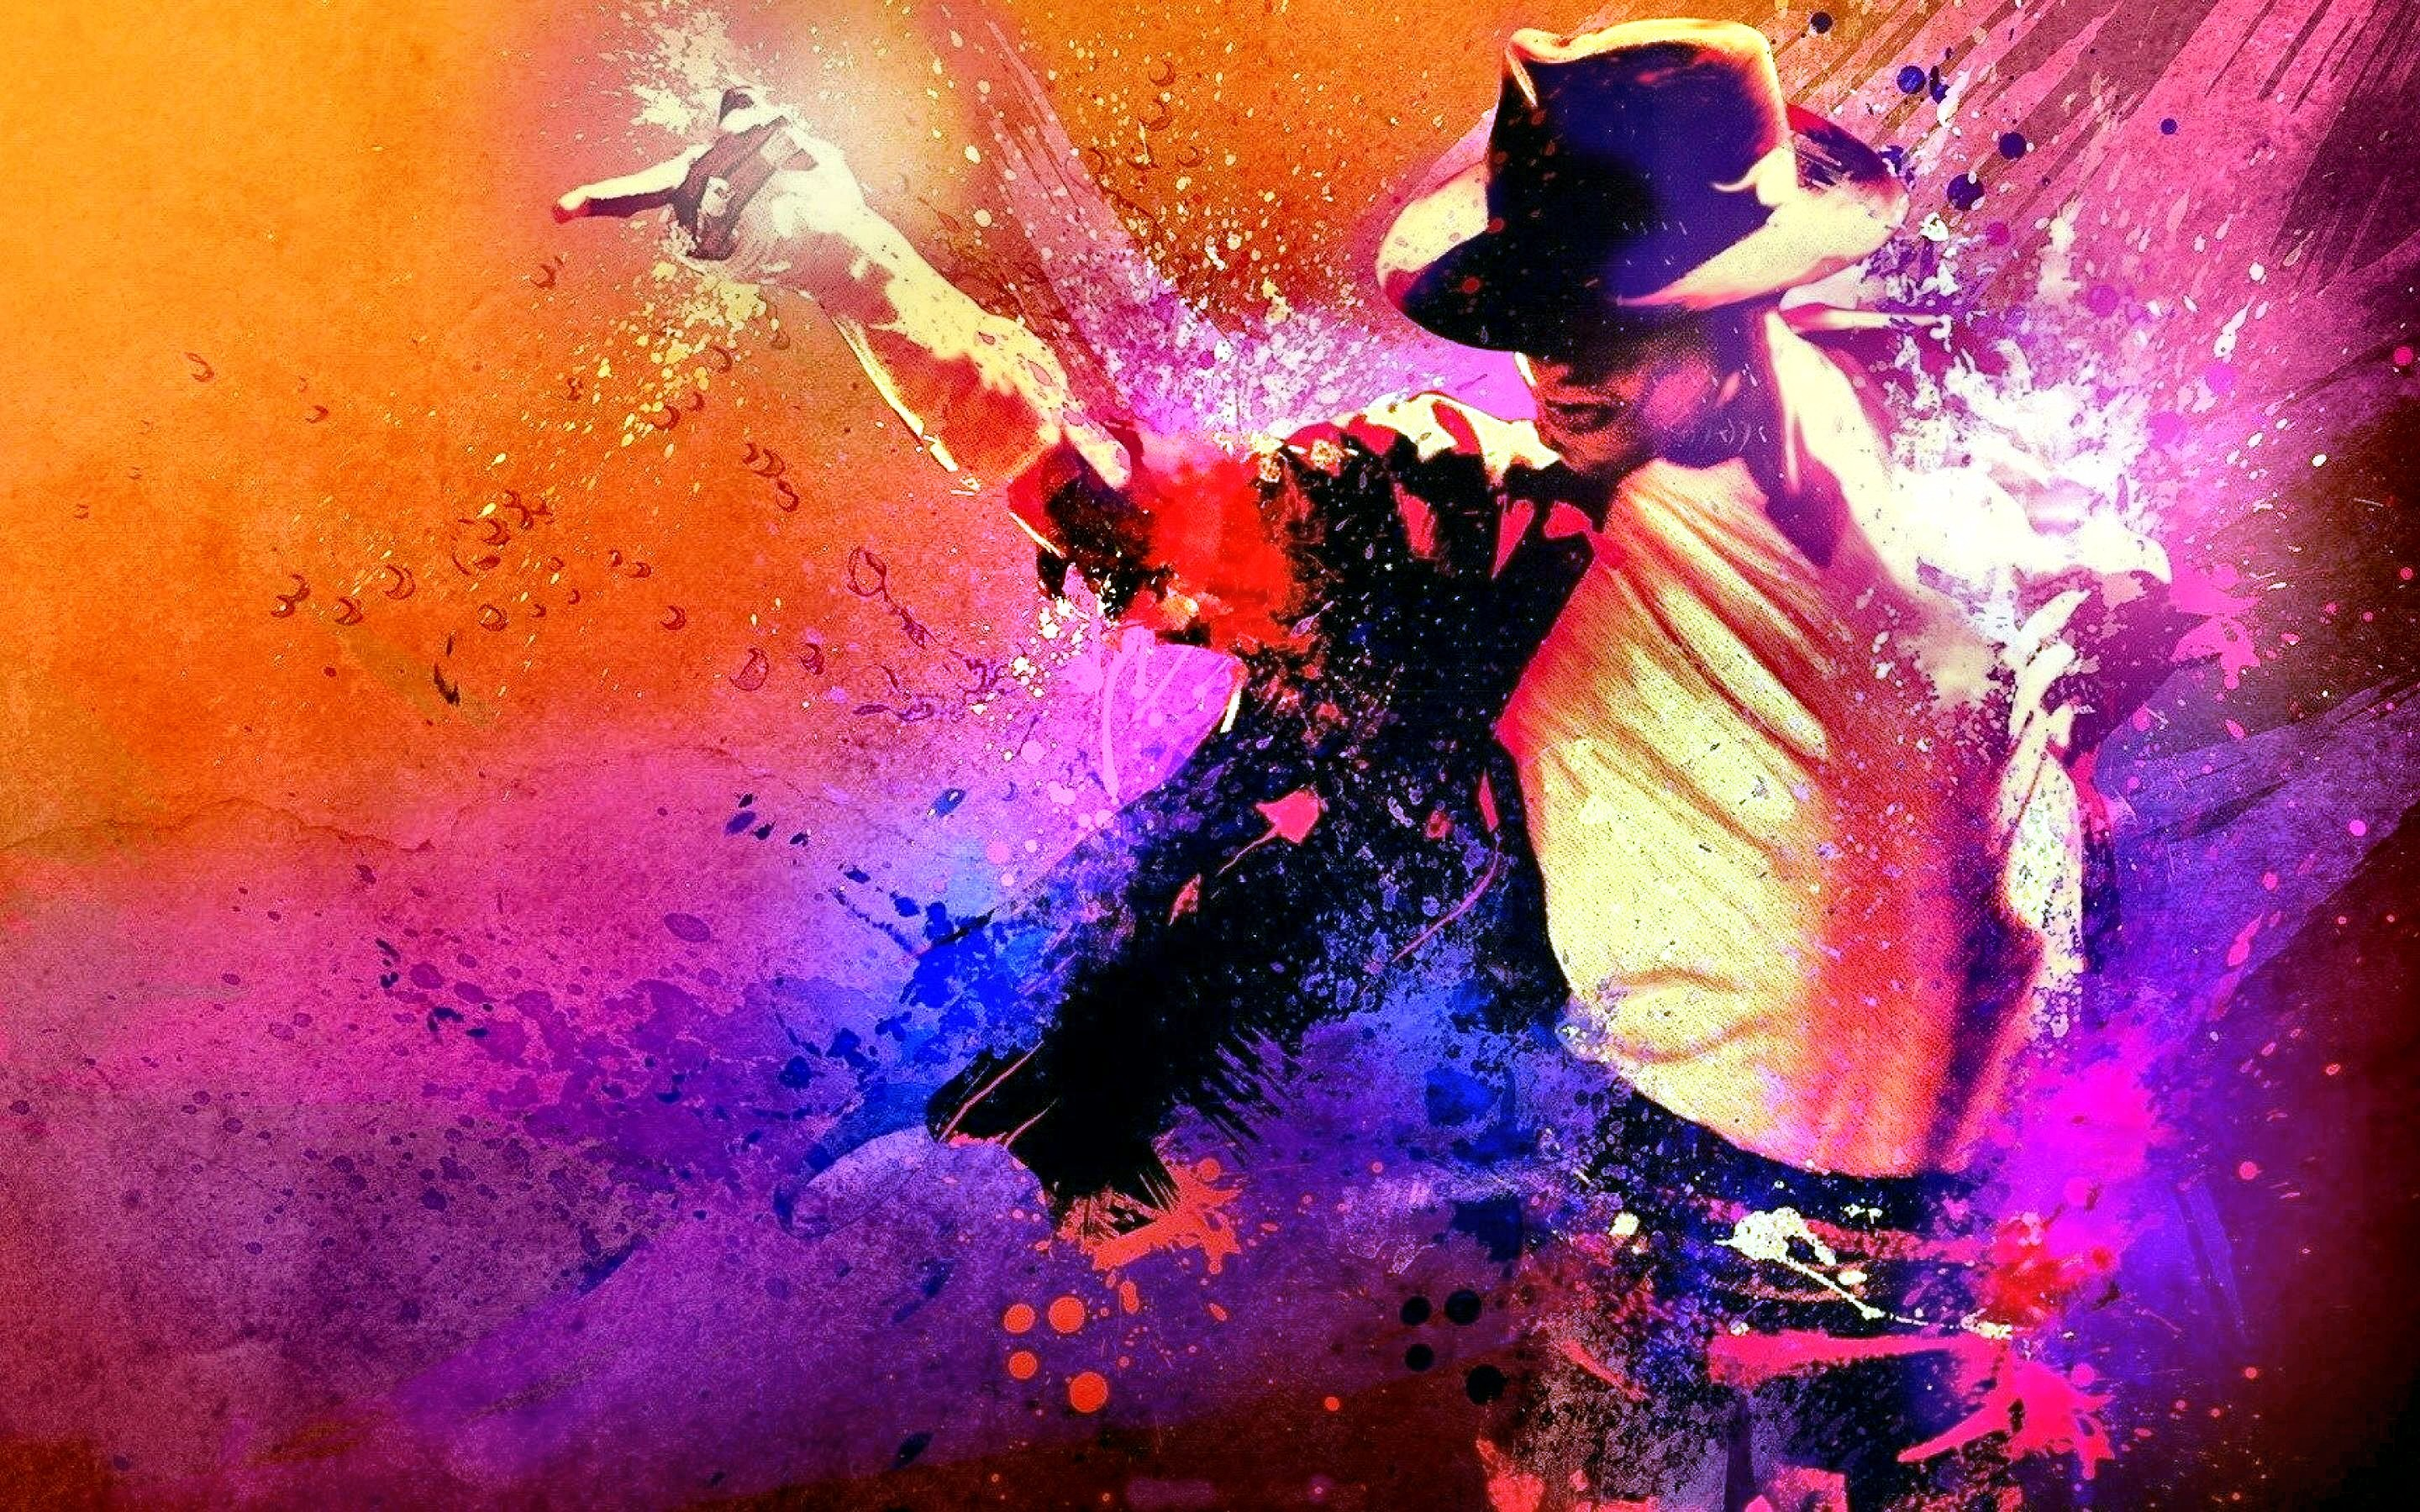 mj backgrounds (68+ images)